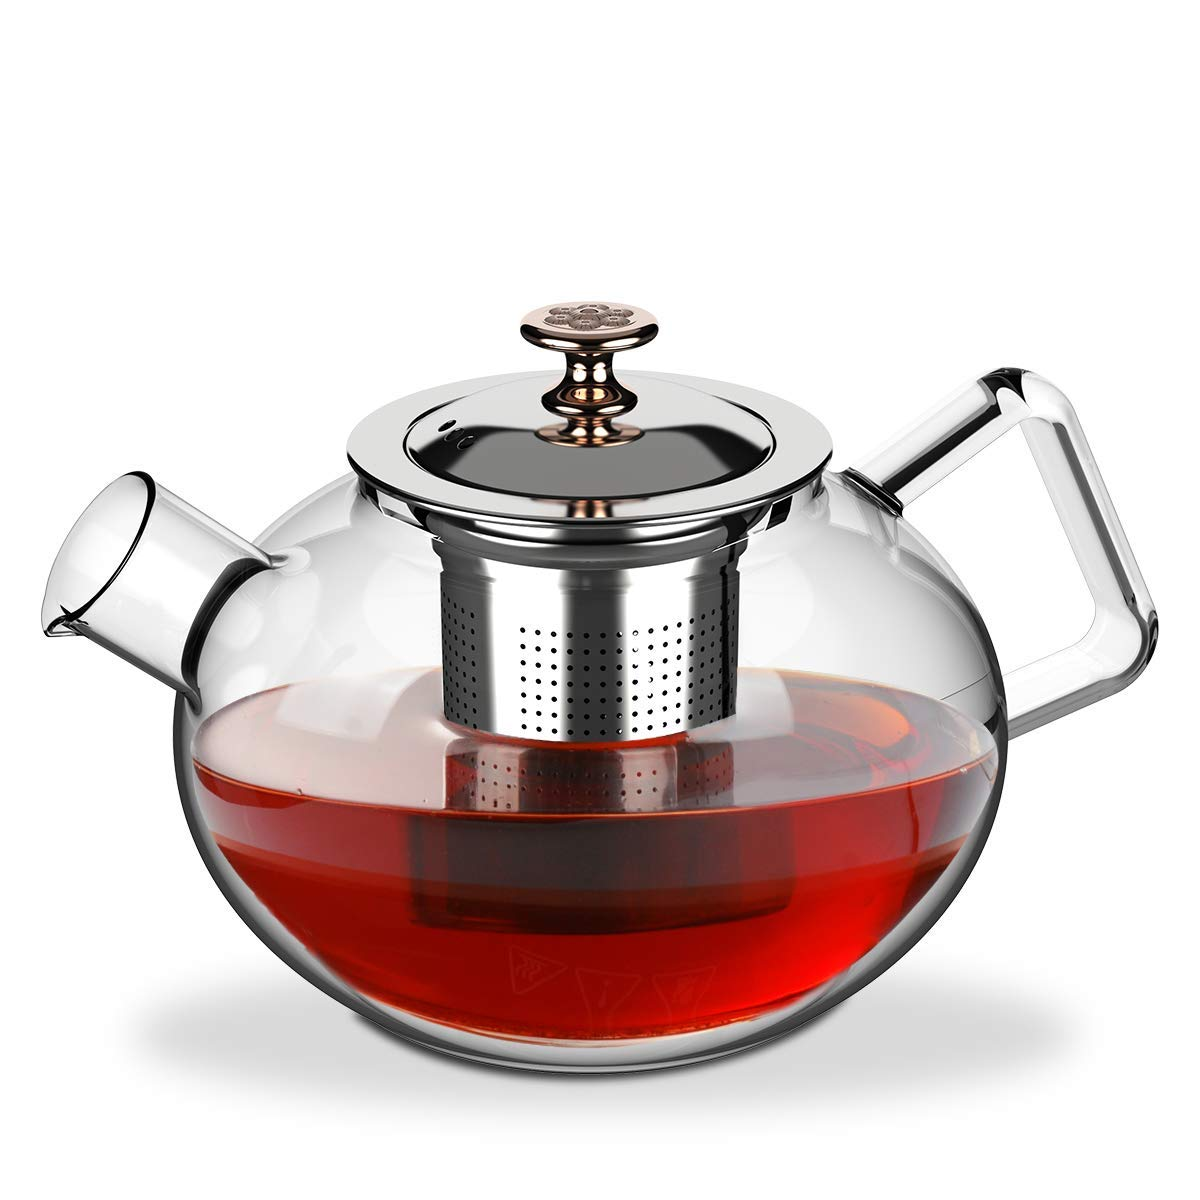 Glass Teapot Borosilicate Glass Tea Pots Stovetop Safe ,Heat Resistant Stove Top and Microwave safe with Stainless Steel Removable Infuser 27 Ounce / 800 ml